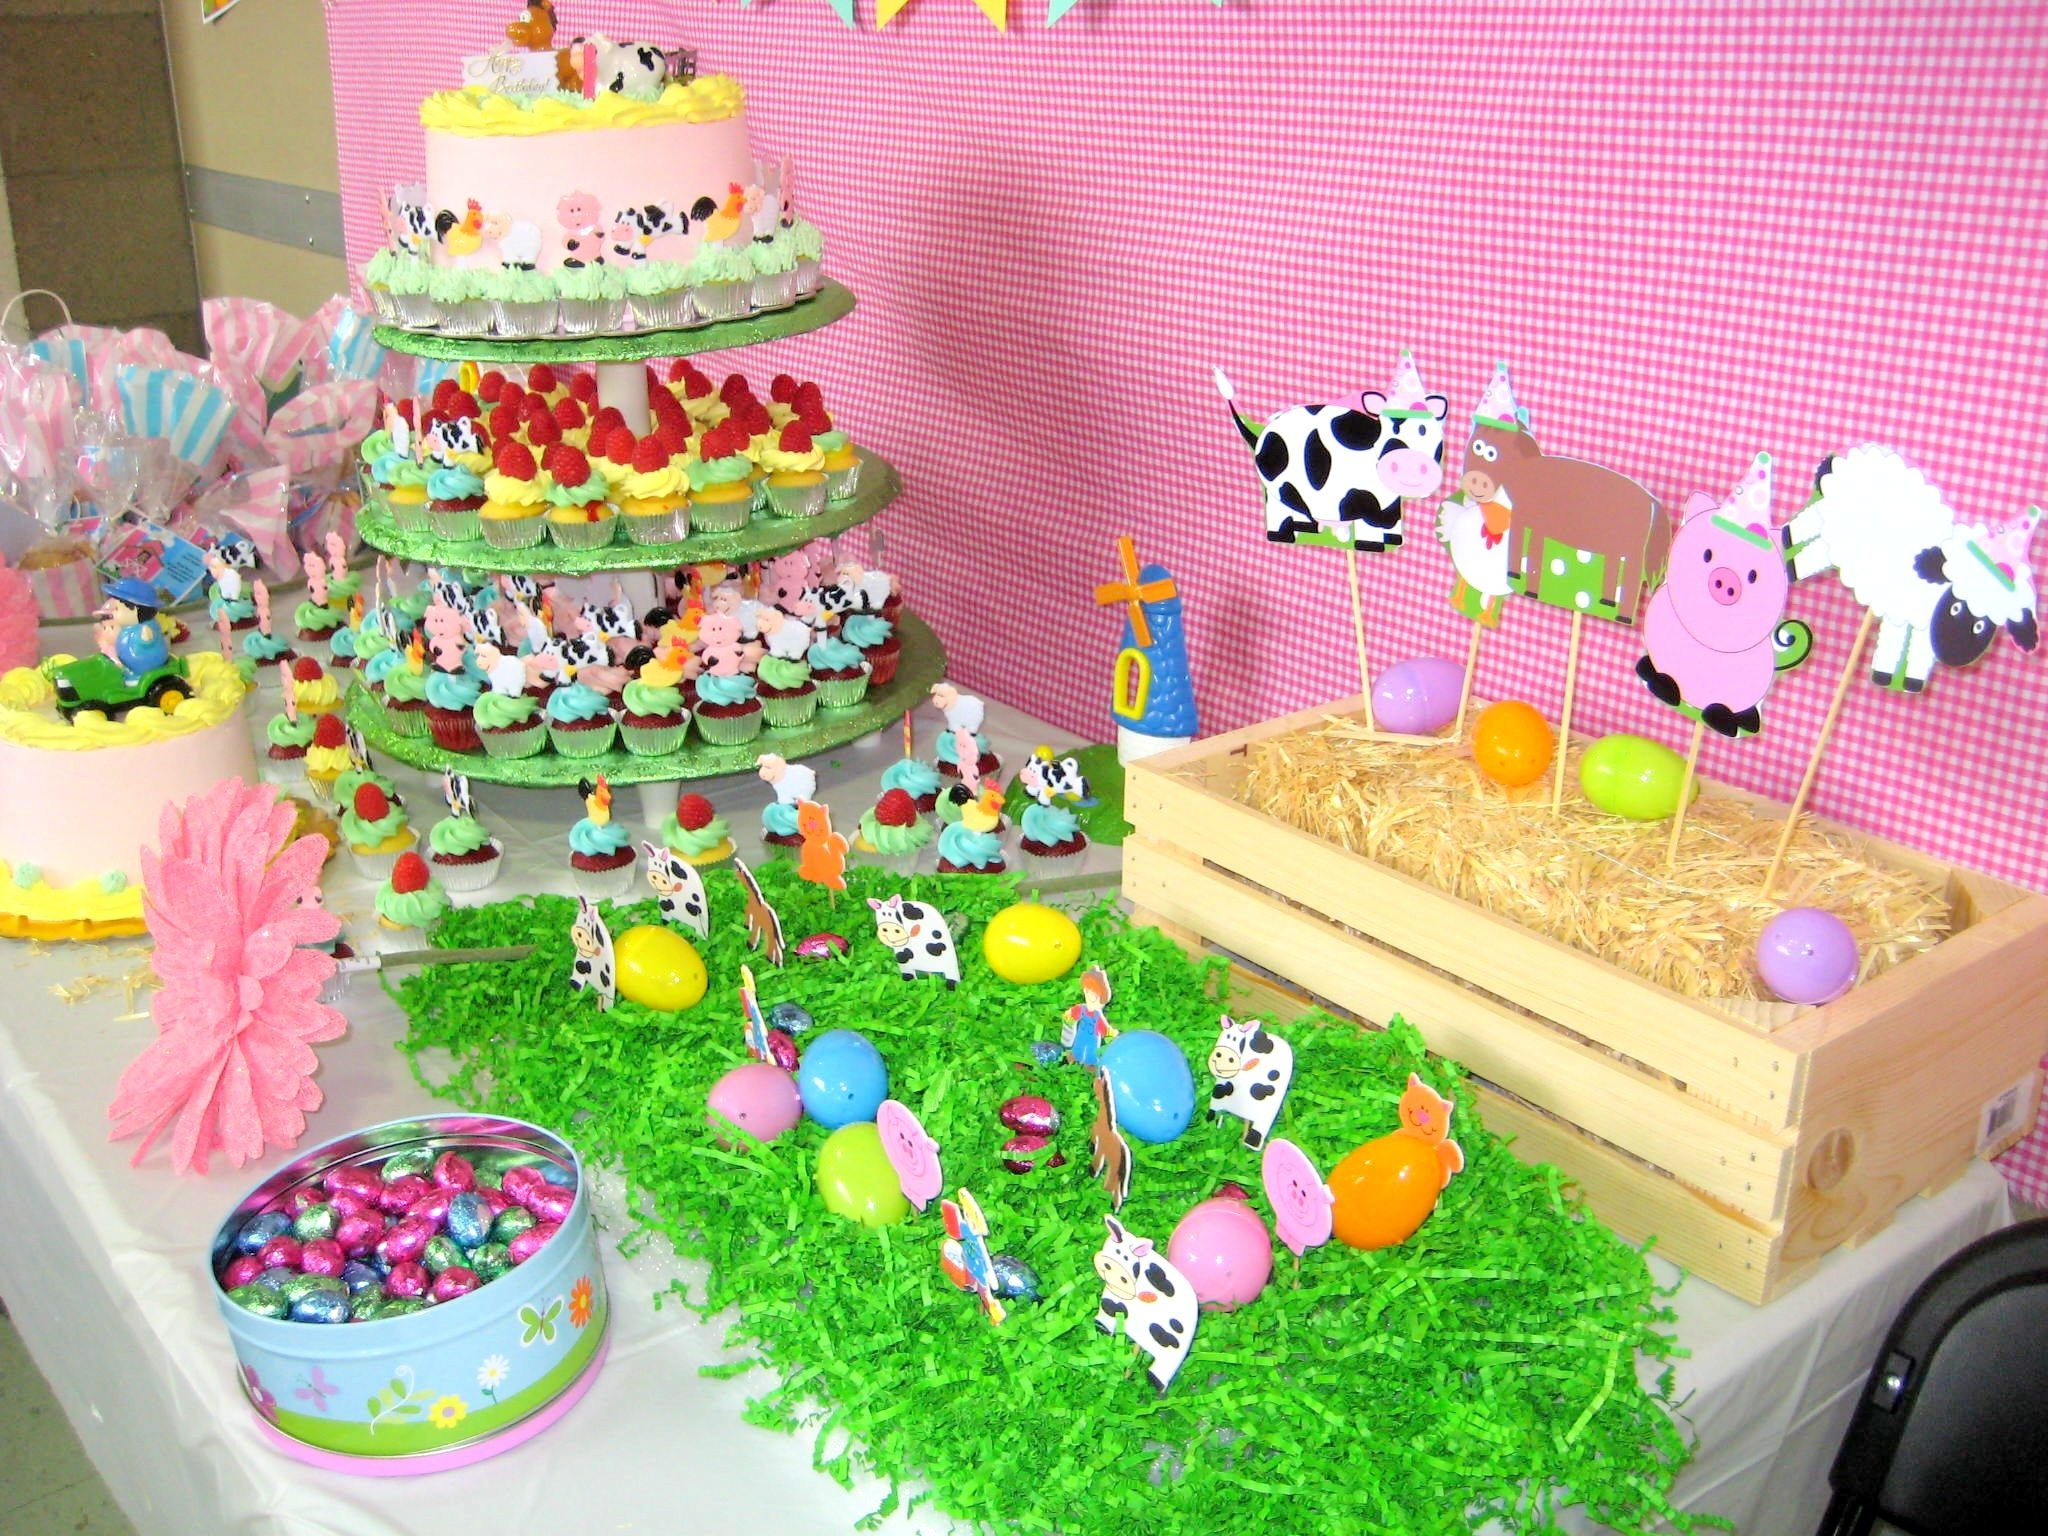 10 Ideal Birthday Party Ideas For 10 Year Olds birthday party game ideas for 10 year olds wedding 1